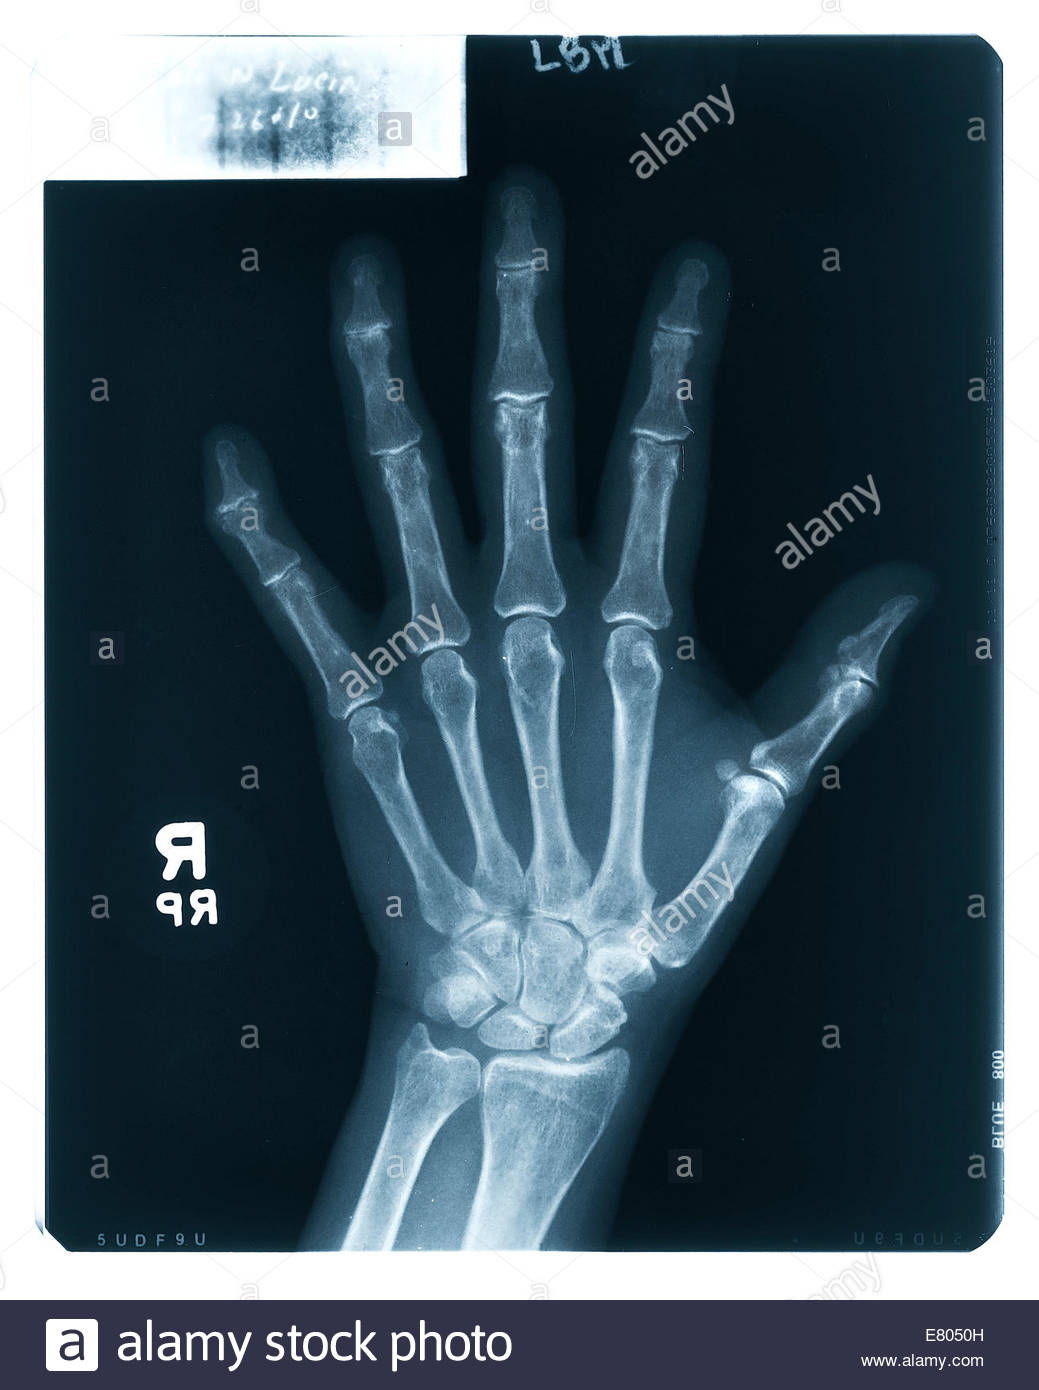 X-ray test images of human finger, Joints, hand, wrist & body parts. - Stock Image